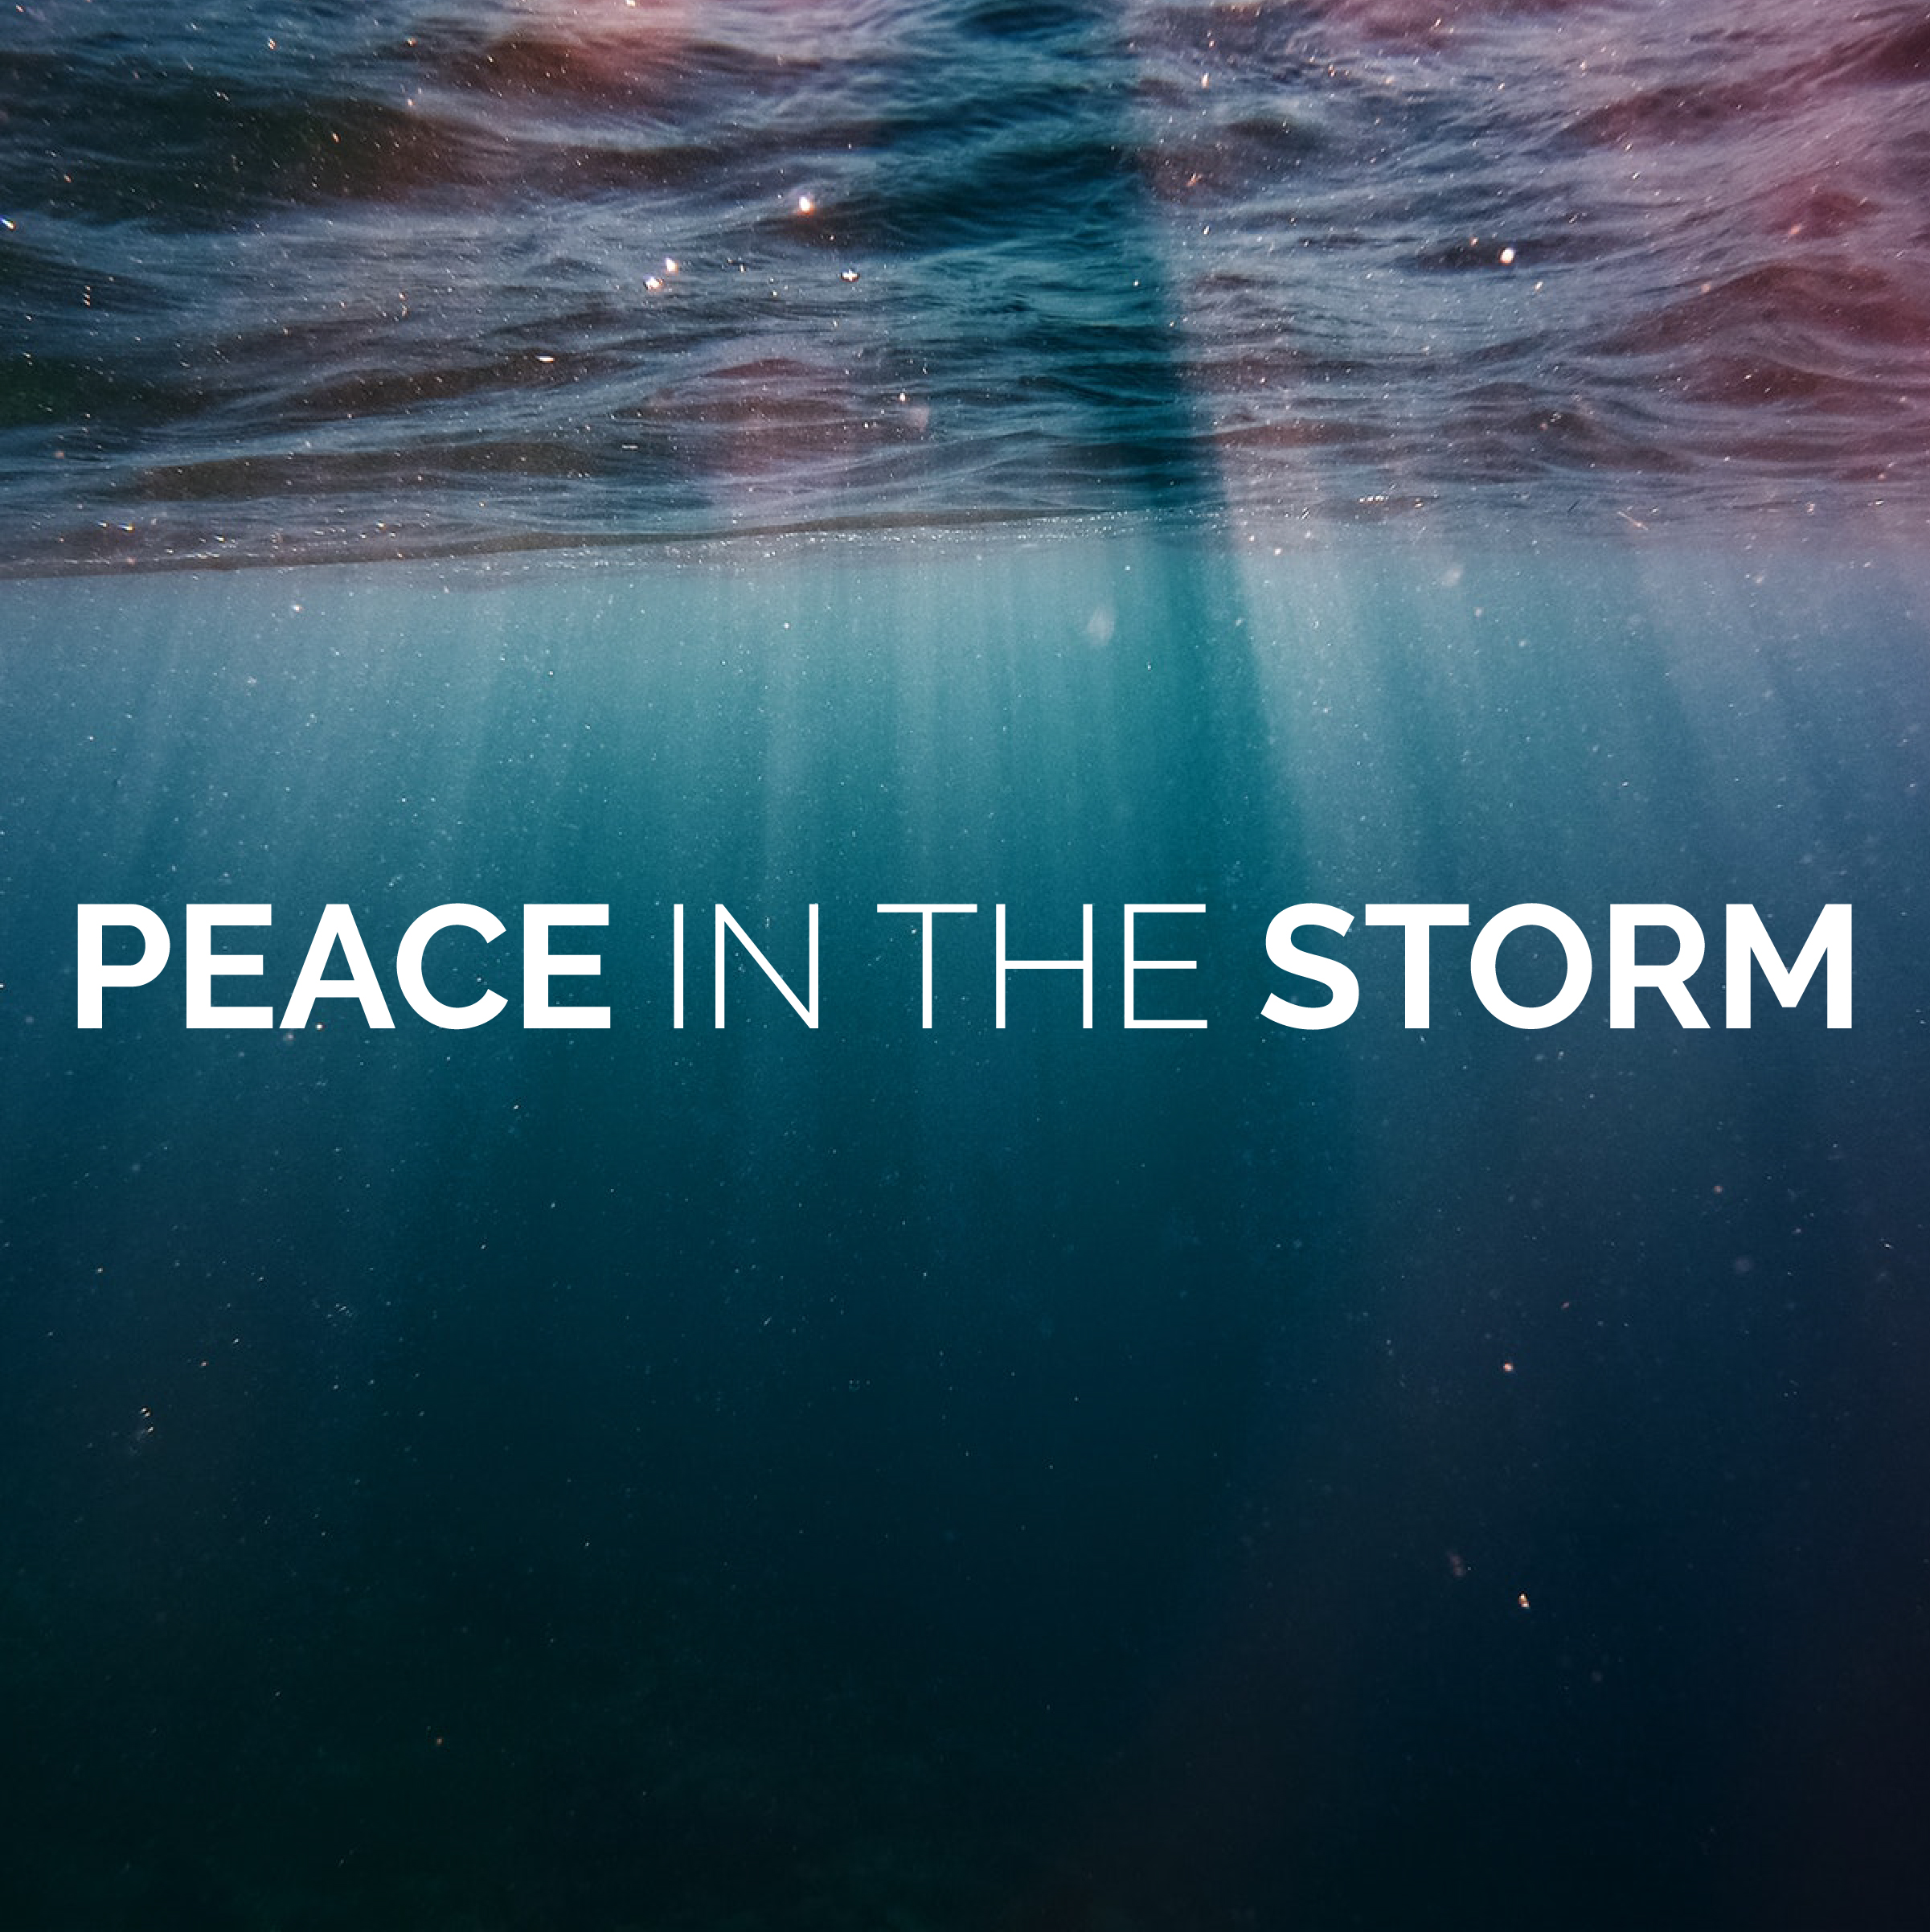 Peace in the Storm 4